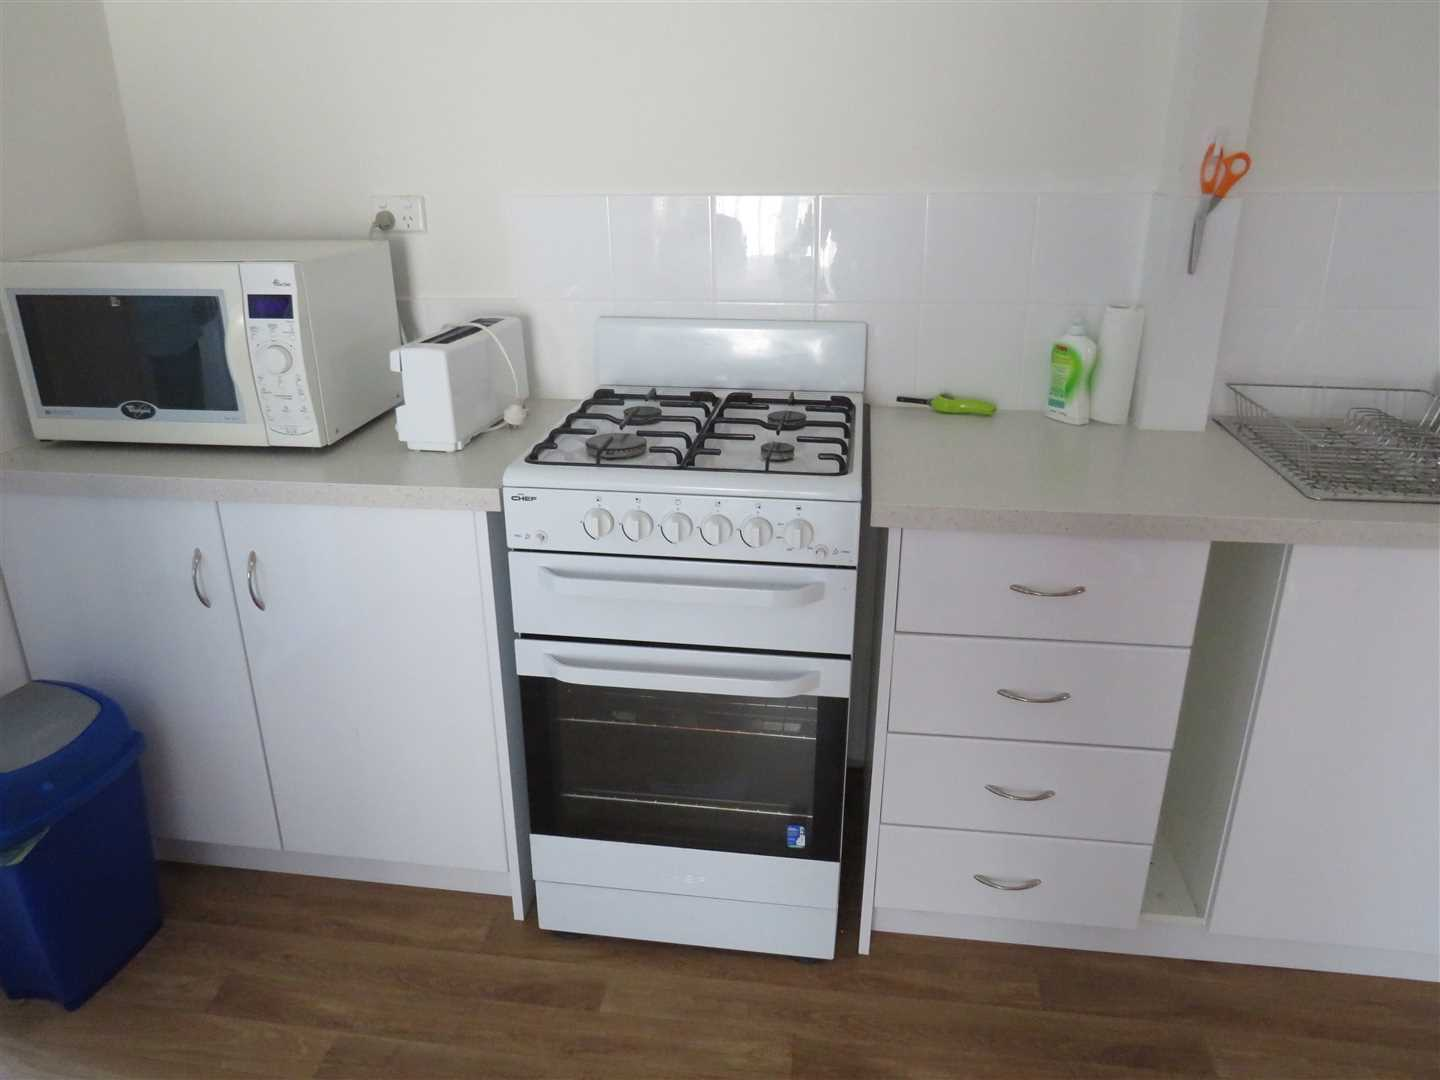 gas stove and microwave in shed unit